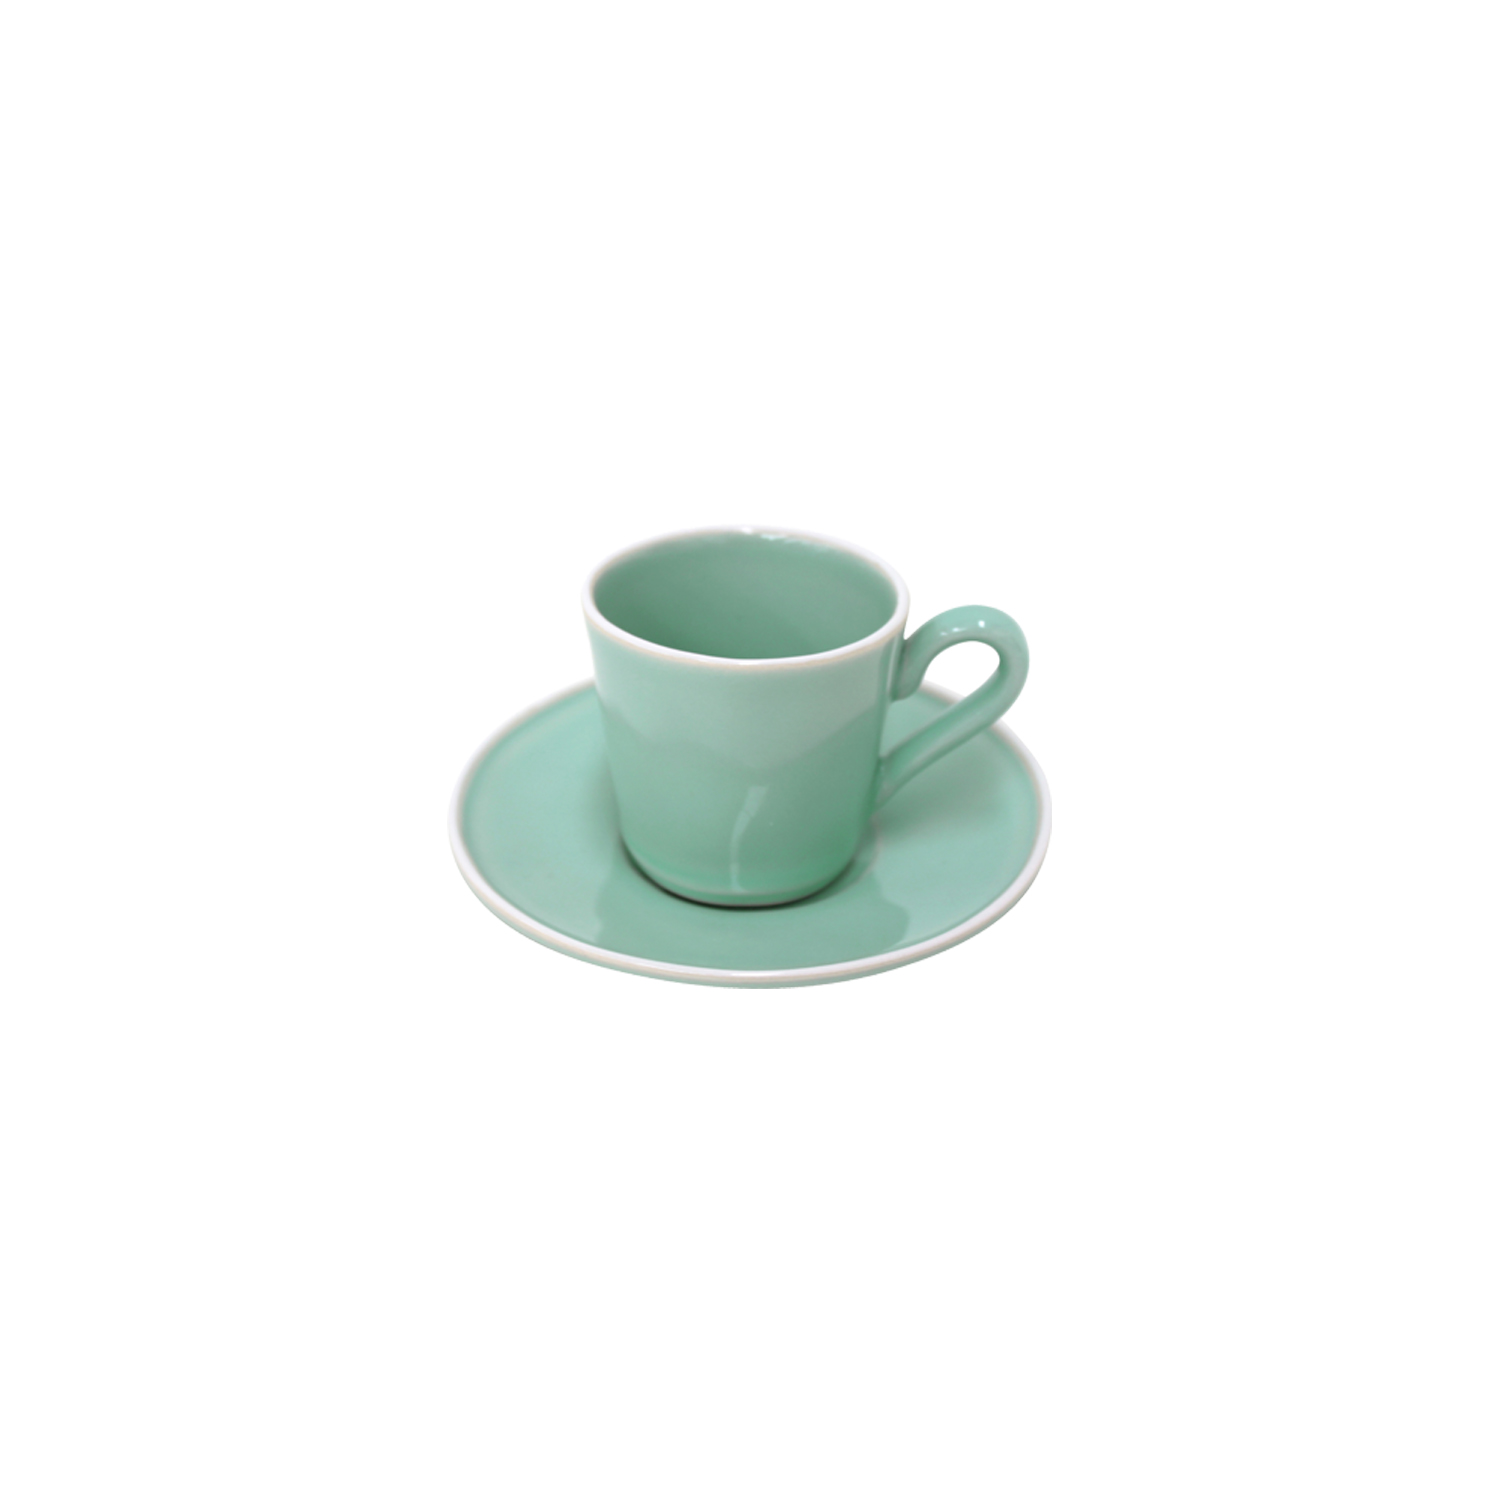 Astoria Mint Coffee Cup & Saucer 0.08l Sparkle Gift